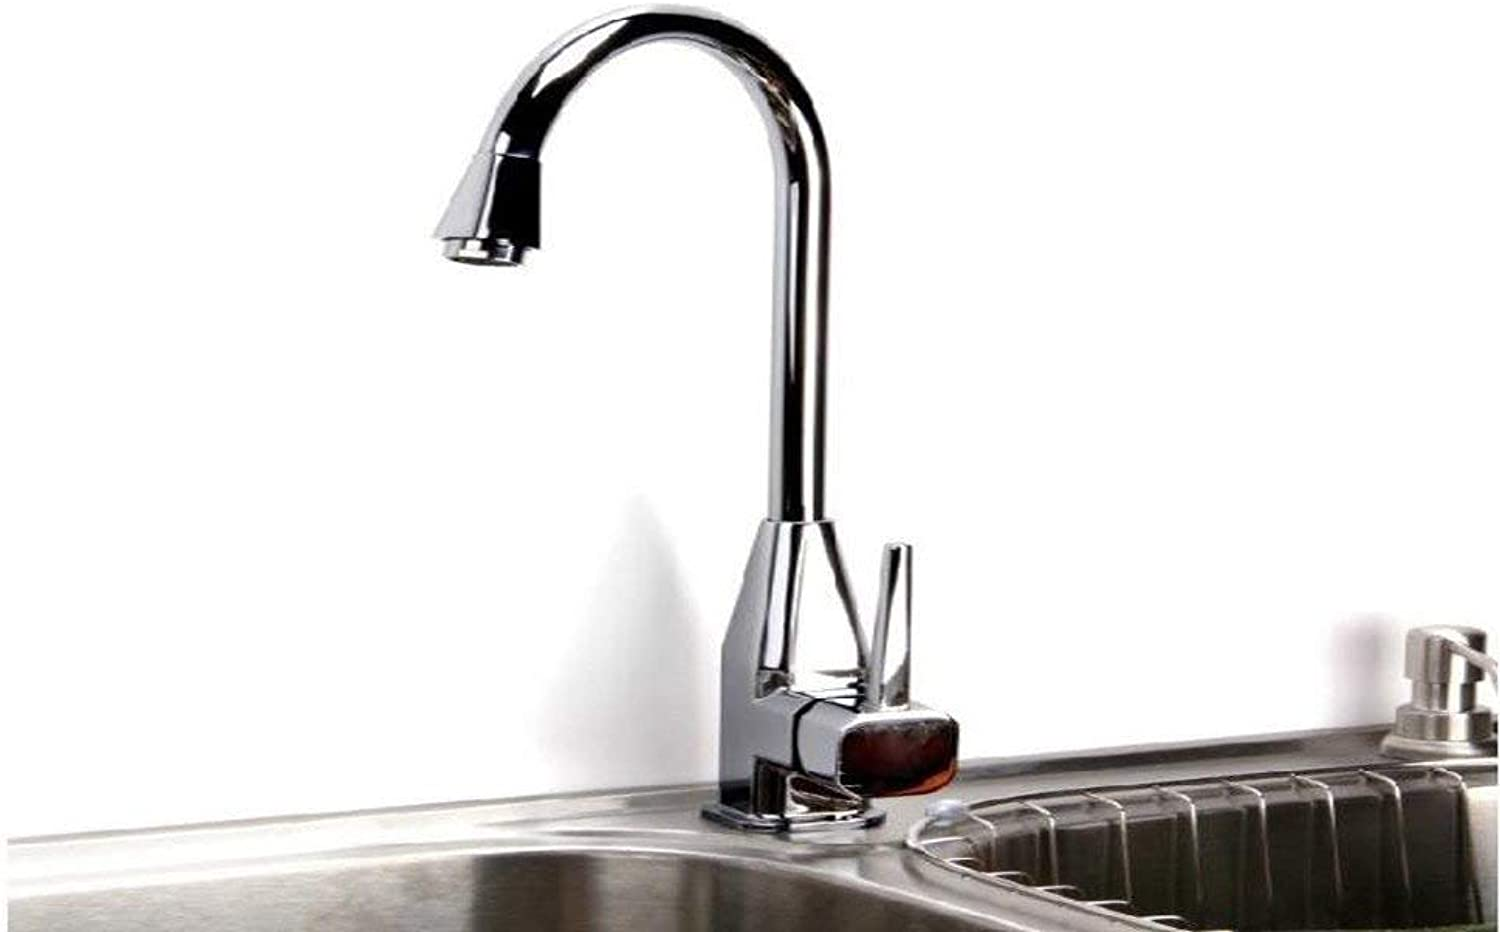 MONFS HOME Hot and cold faucets in the kitchen, all copper can be redated